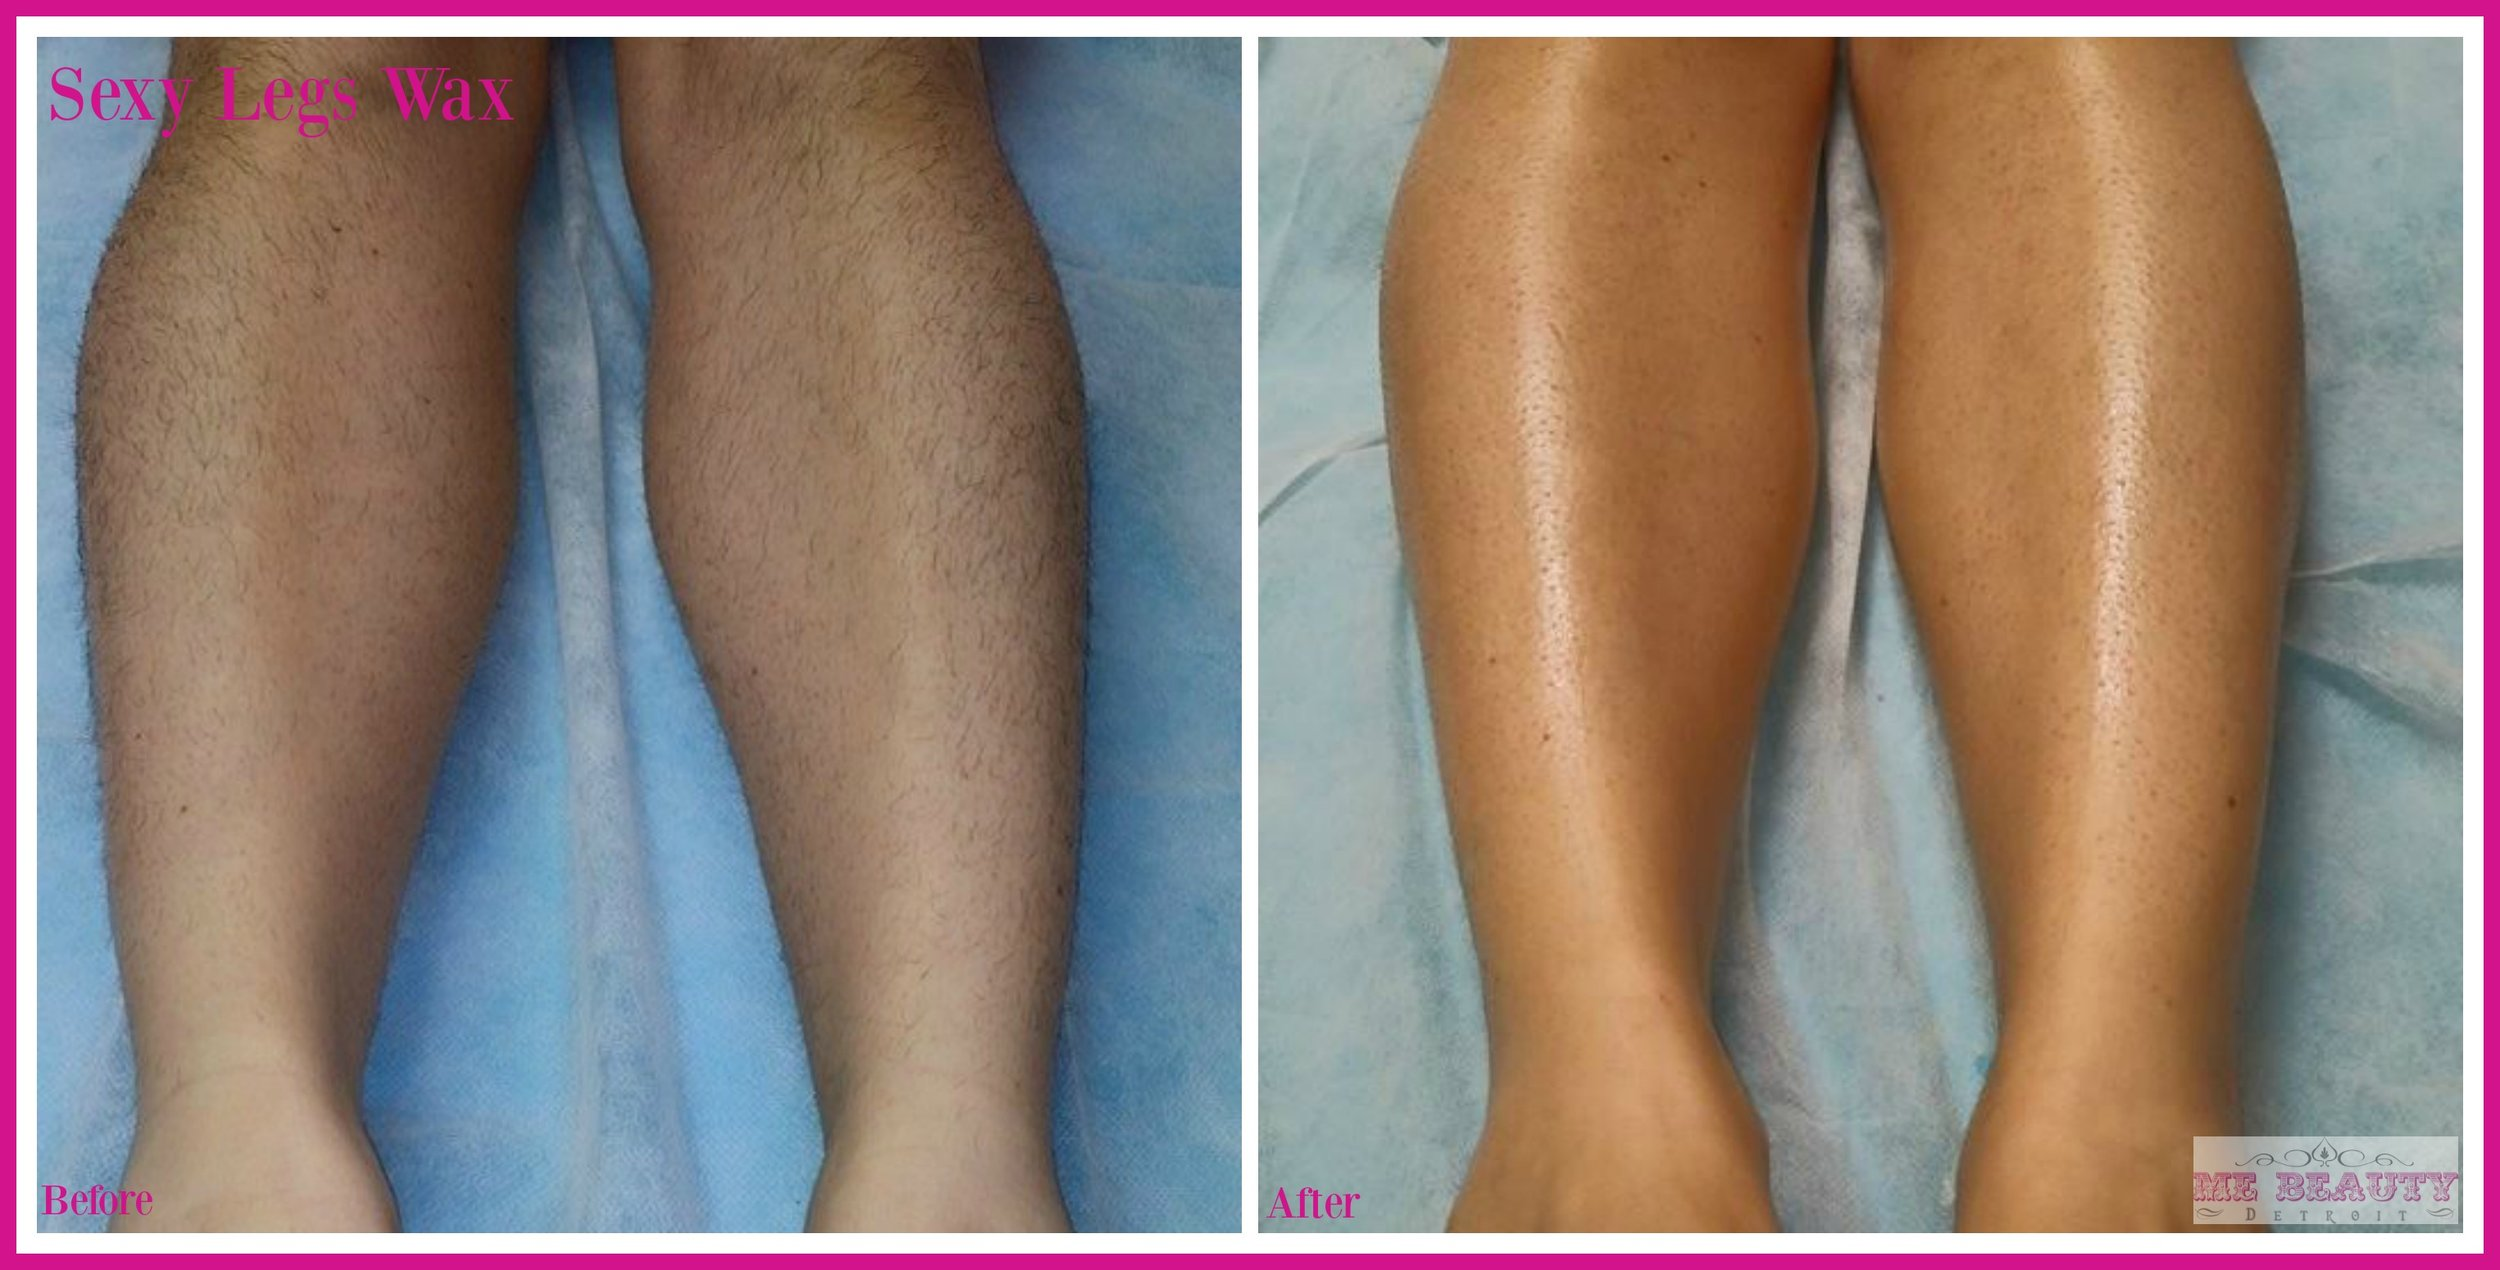 Caucasian American Female 30s waxes semi-monthly.  She shaves in between waxing and has not gotten the results of clients that don't shave in between waxes.  Photo Credit ME Beauty LLC August 2014